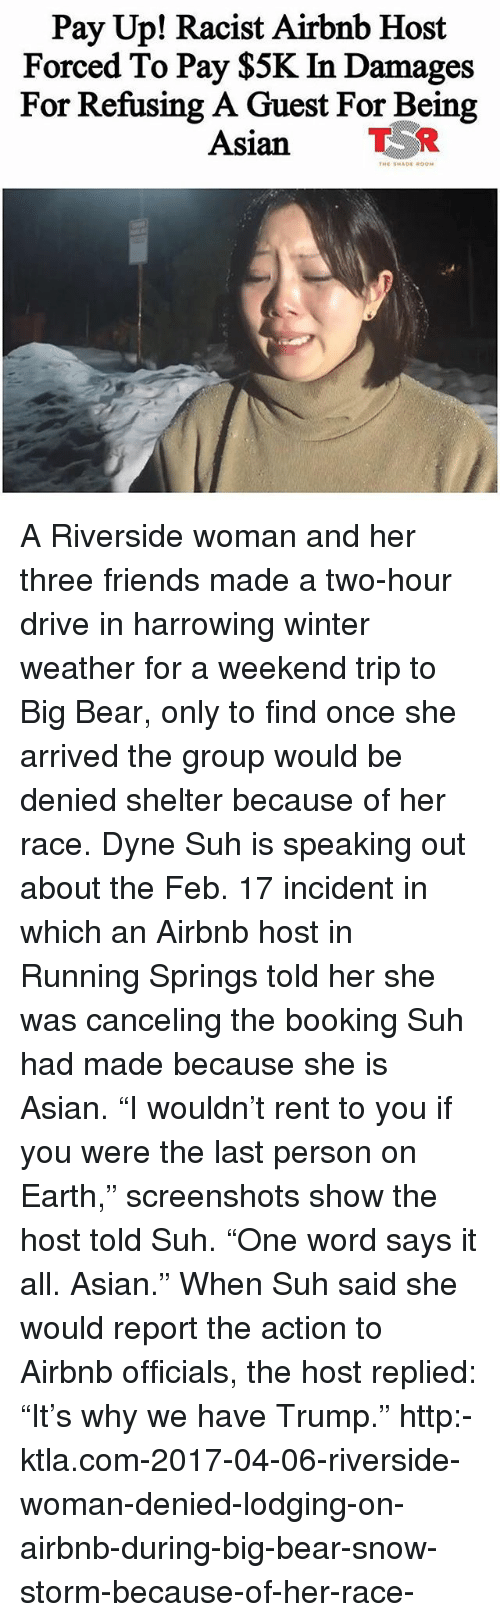 "Asian, Friends, and Memes: Pay Up! Racist Airbnb Host  Forced To Pay $5K In Damages  For Refusing A Guest For Being  Asian TR A Riverside woman and her three friends made a two-hour drive in harrowing winter weather for a weekend trip to Big Bear, only to find once she arrived the group would be denied shelter because of her race. Dyne Suh is speaking out about the Feb. 17 incident in which an Airbnb host in Running Springs told her she was canceling the booking Suh had made because she is Asian. ""I wouldn't rent to you if you were the last person on Earth,"" screenshots show the host told Suh. ""One word says it all. Asian."" When Suh said she would report the action to Airbnb officials, the host replied: ""It's why we have Trump."" http:-ktla.com-2017-04-06-riverside-woman-denied-lodging-on-airbnb-during-big-bear-snow-storm-because-of-her-race-"